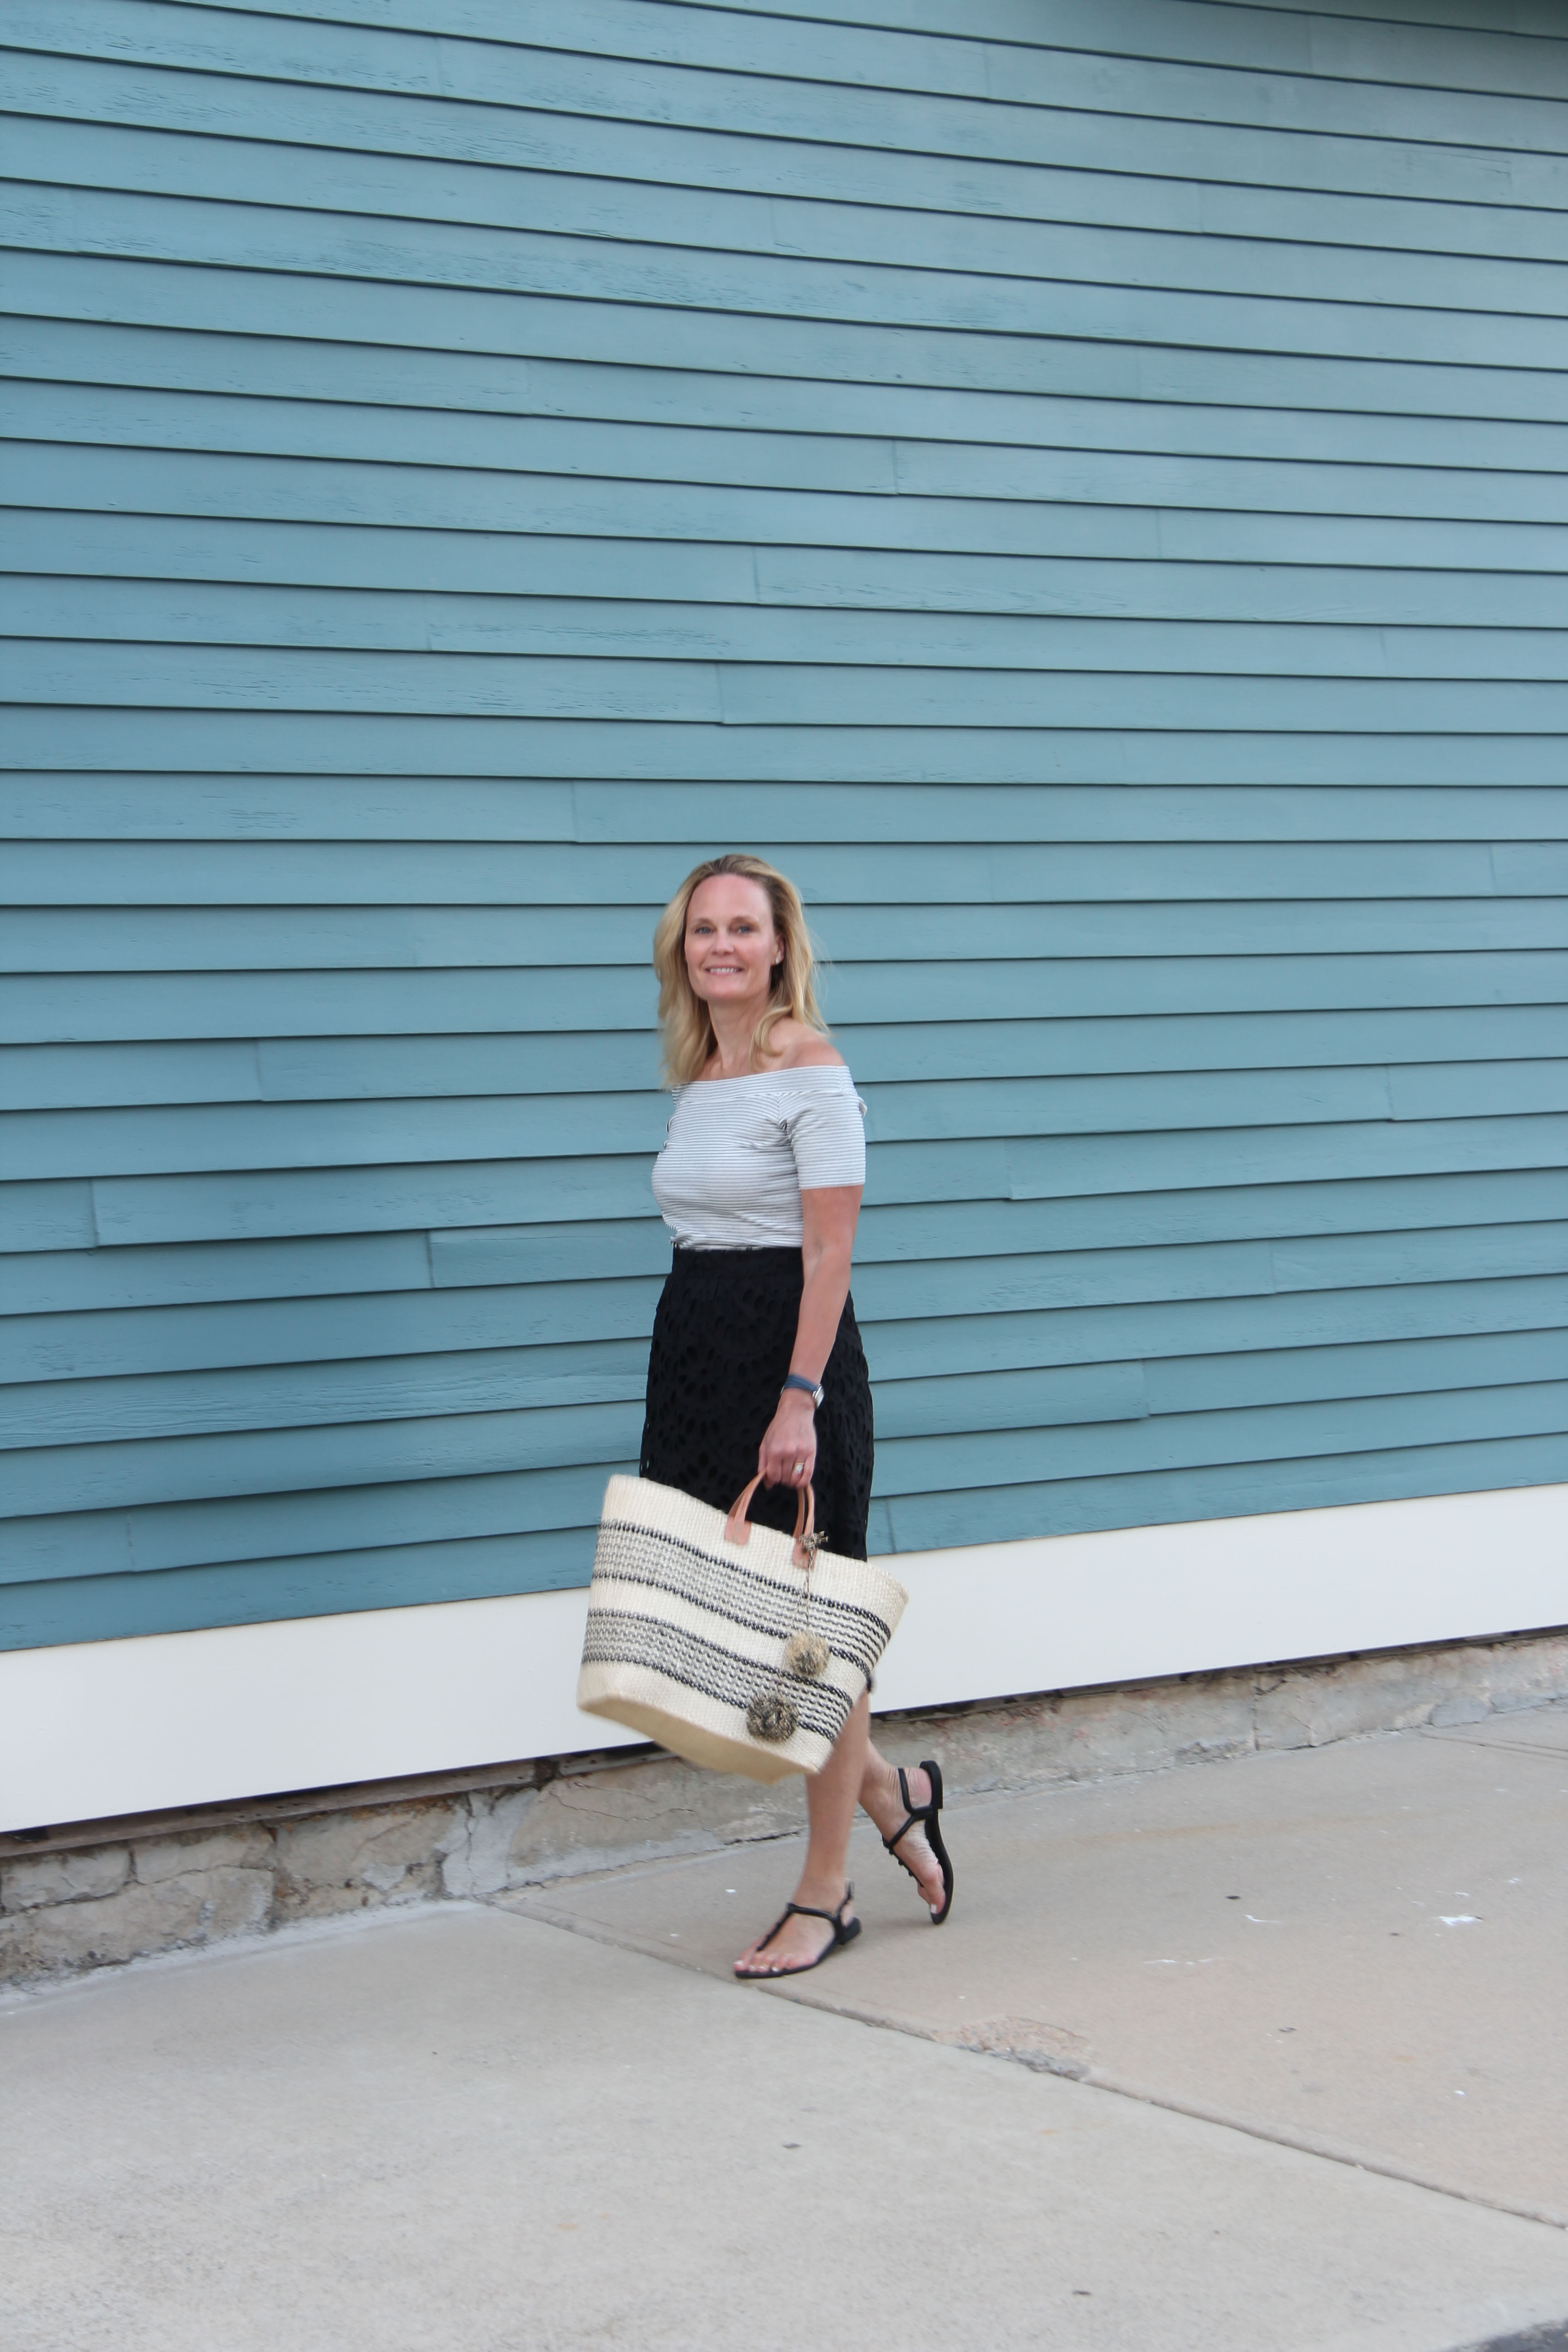 Ridgely Brode picked up this scalloped black lace skirt recently and paired it with a off the shoulder striped t-shirt on her blog, Ridgely's Radar.